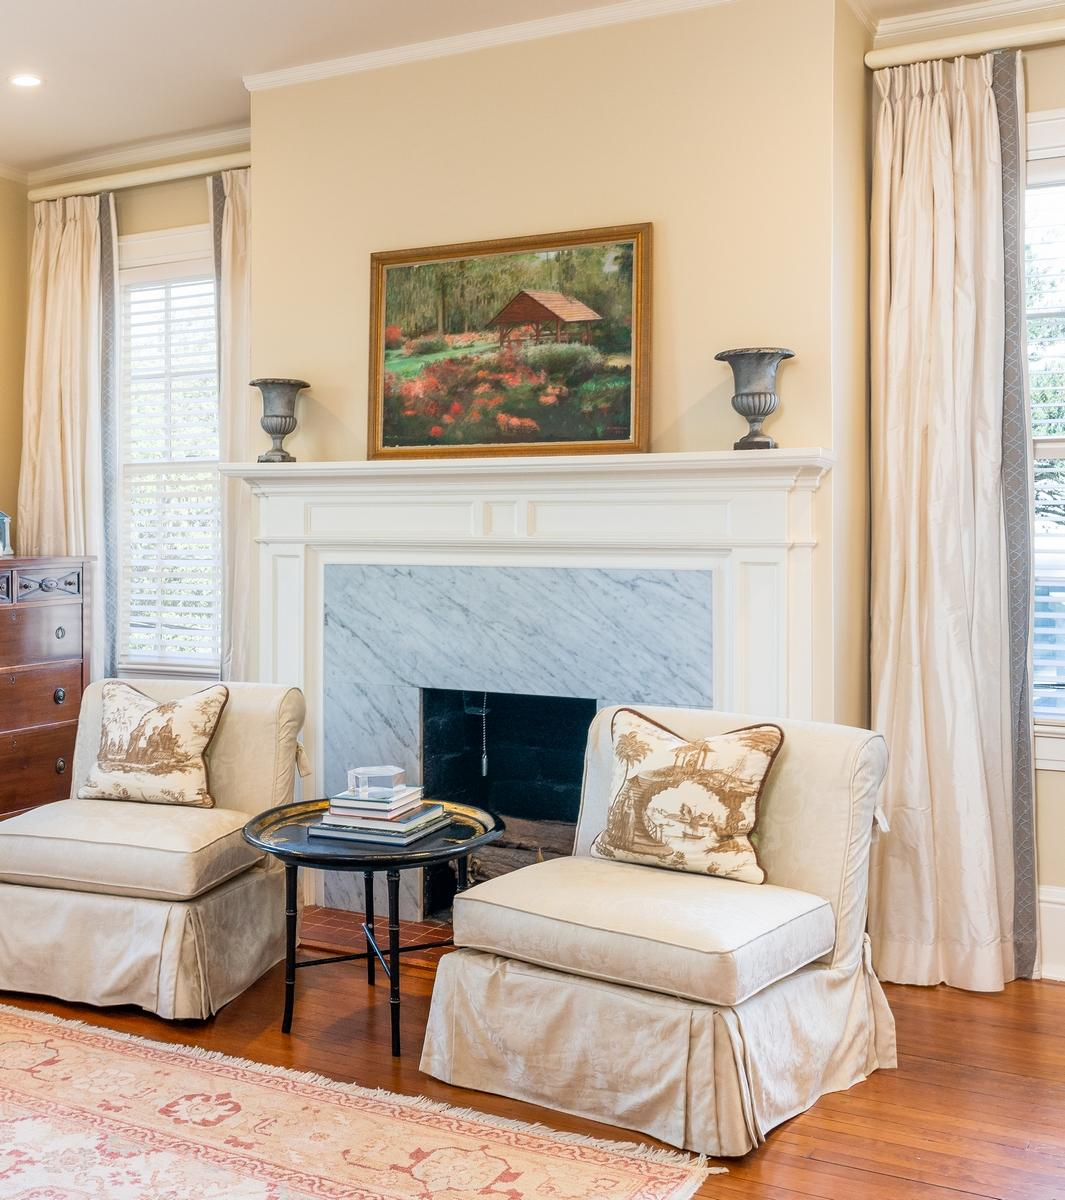 South of Broad Homes For Sale - 83 South Battery, Charleston, SC - 32